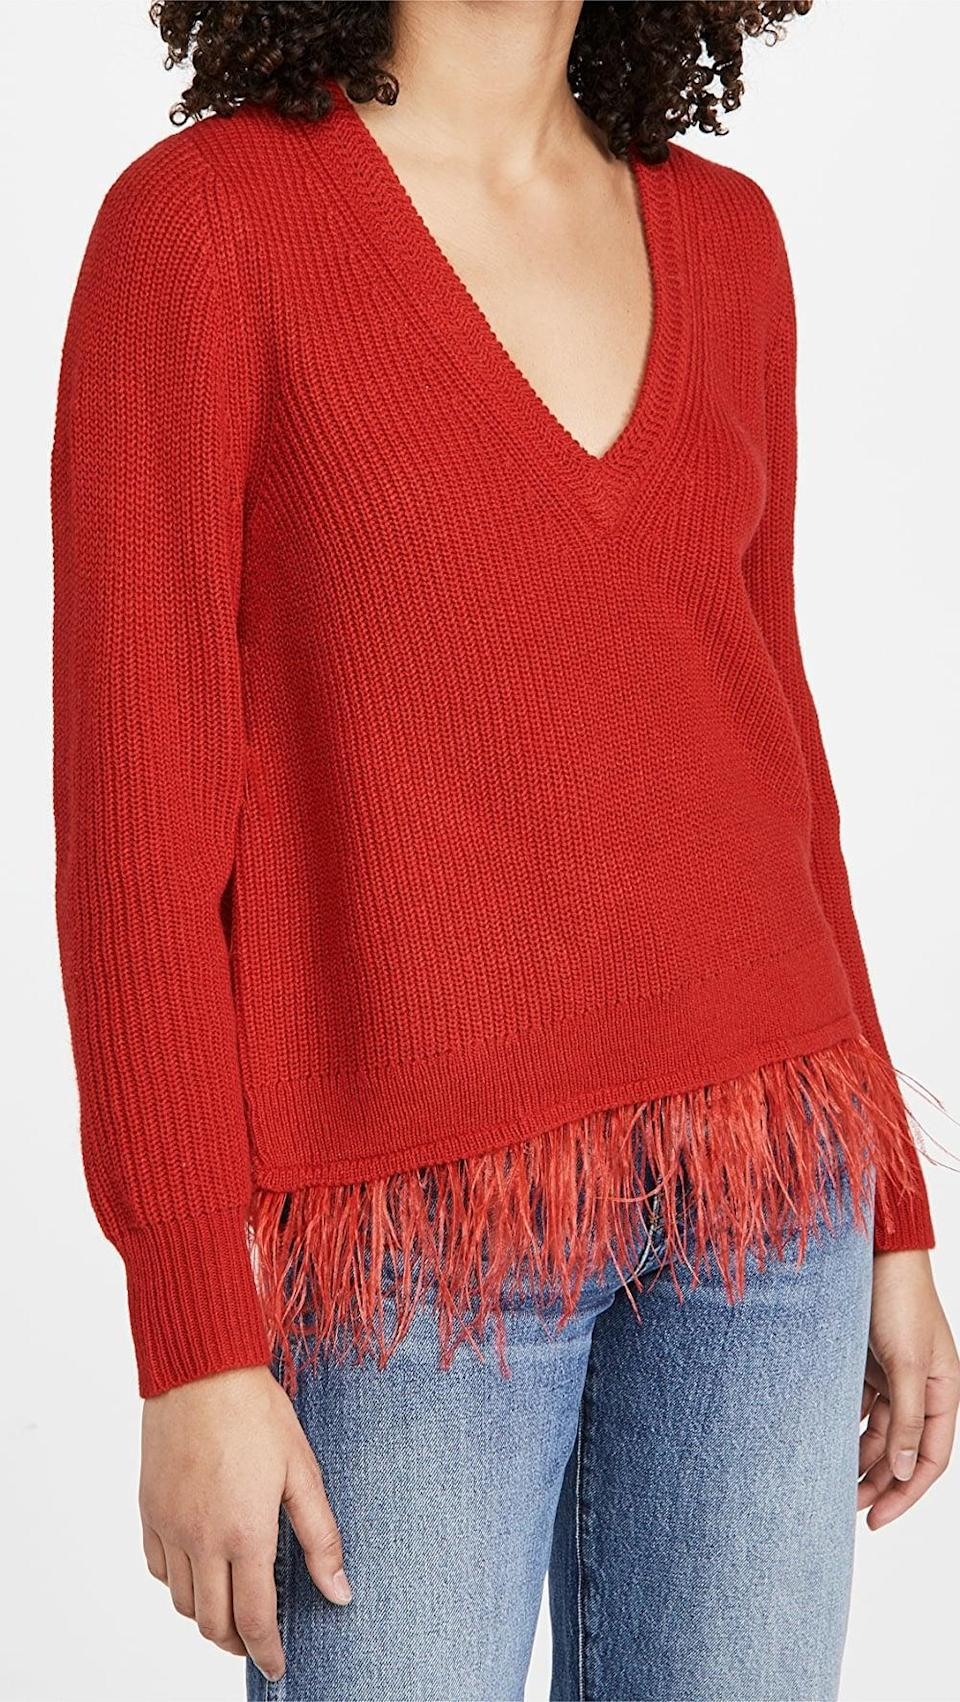 <p>If you're looking for a red sweater, this <span>Saylor Juneau Sweater</span> ($231) adds a little something extra.</p>